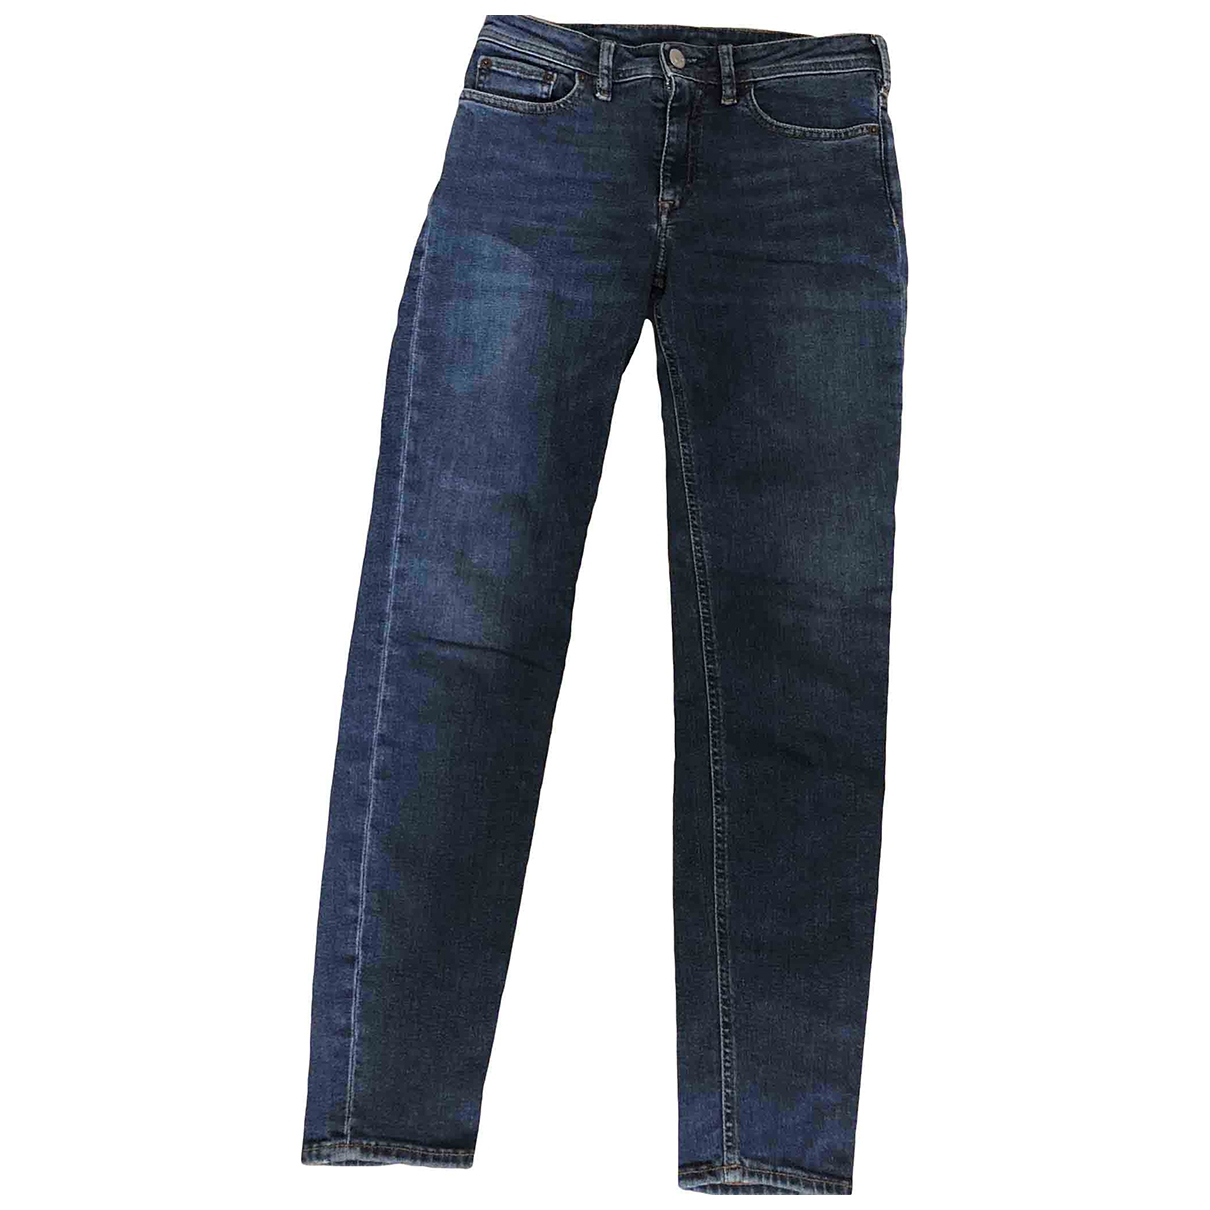 Acne Studios Blå Konst Blue Cotton - elasthane Jeans for Women 34 FR